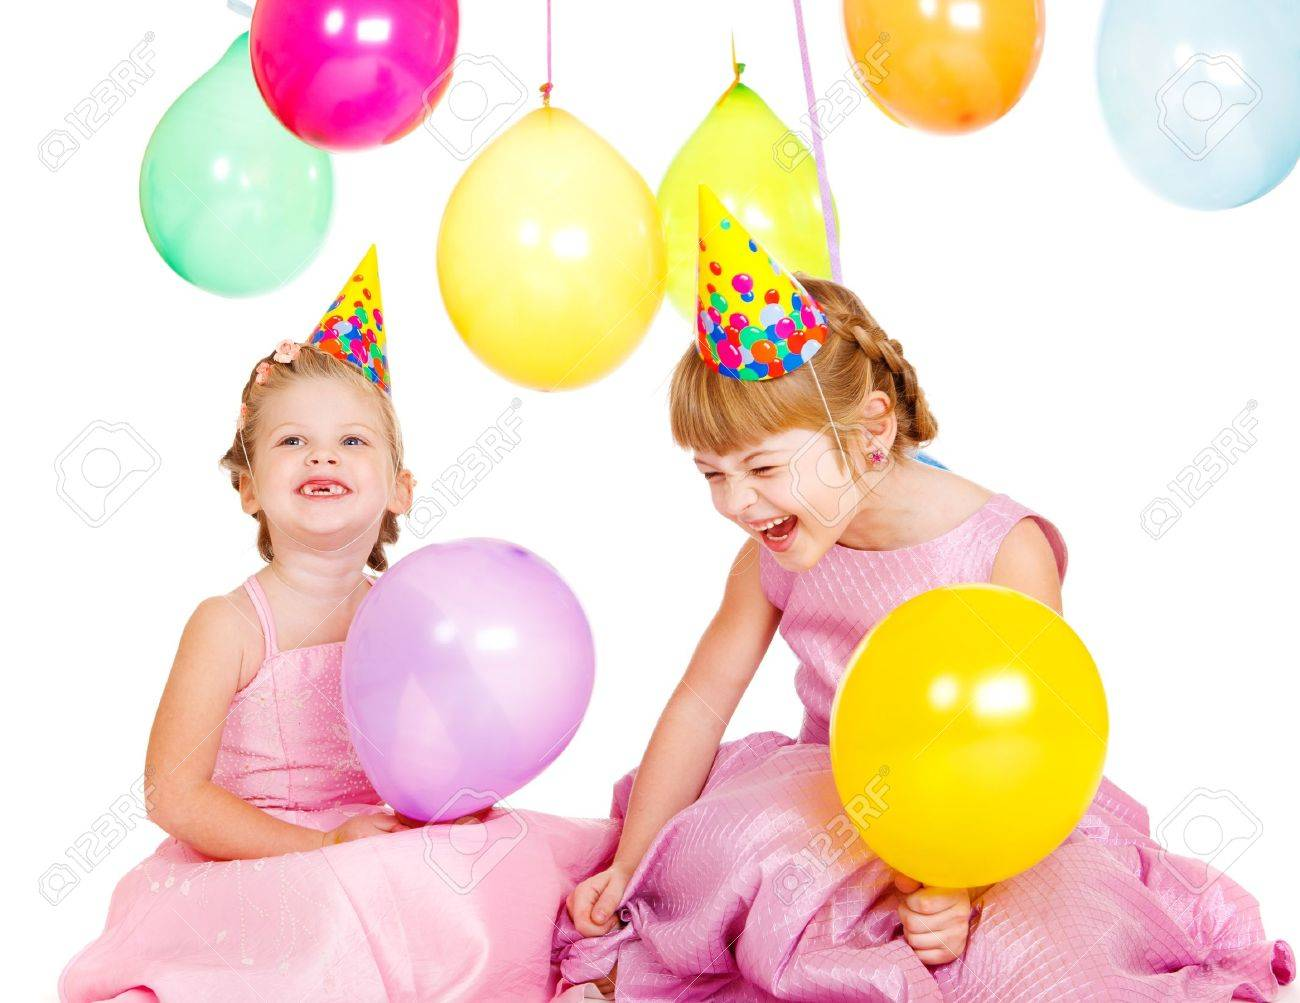 Kids Laughing And Playing Laughing Kids in Party Hats